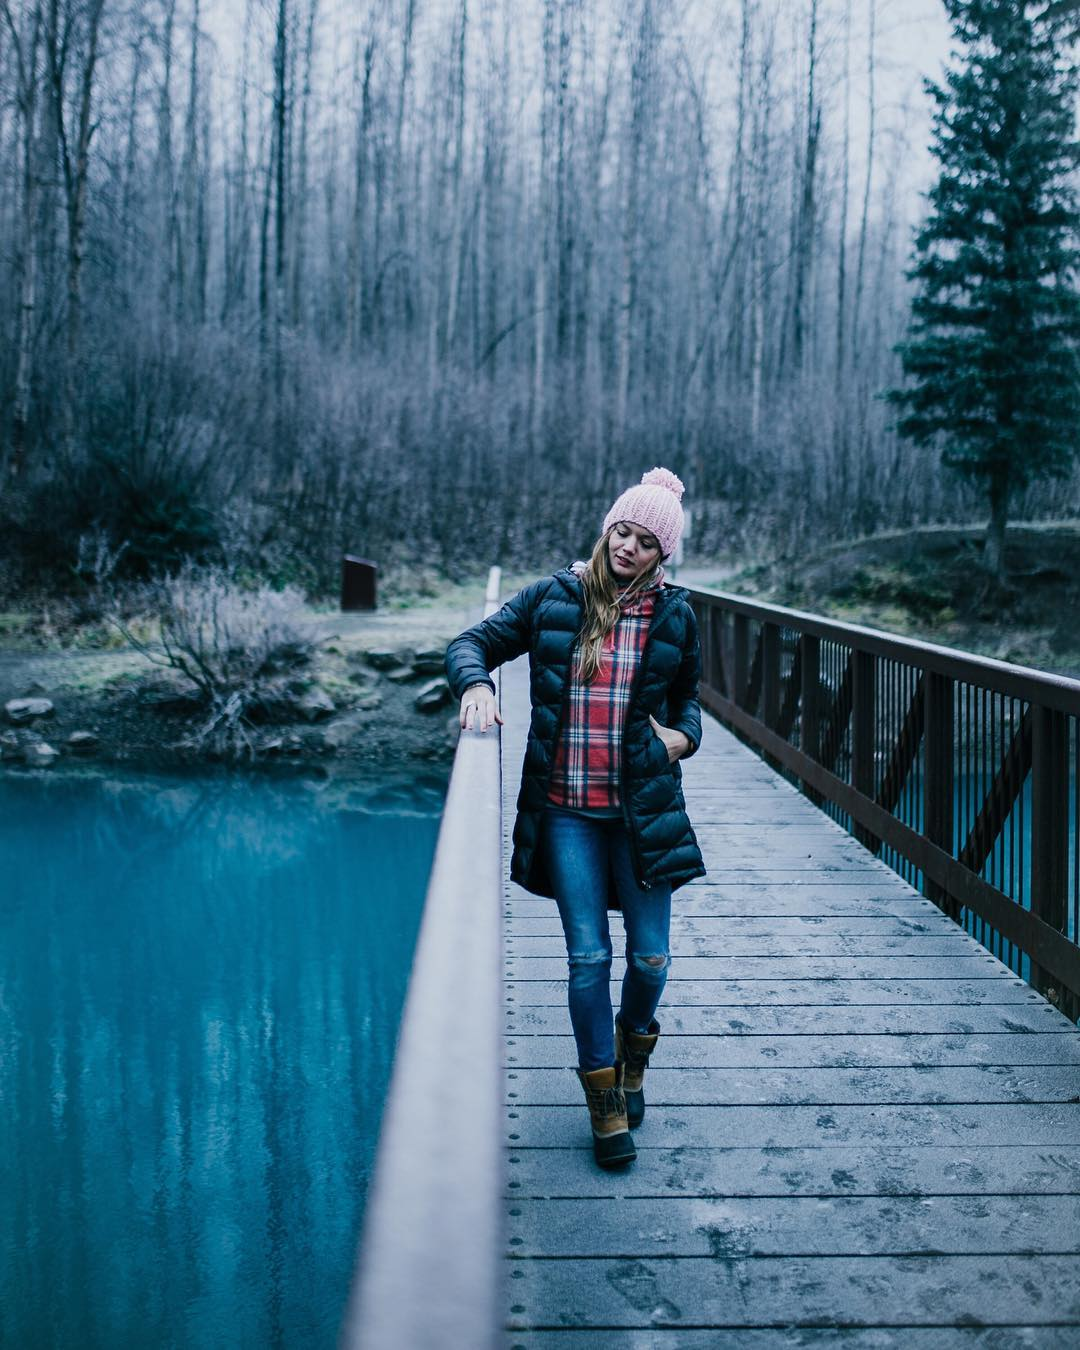 Plaid Shirt With Ripped Jeans, Warm Cap And Fluffy Hoodies Jacket